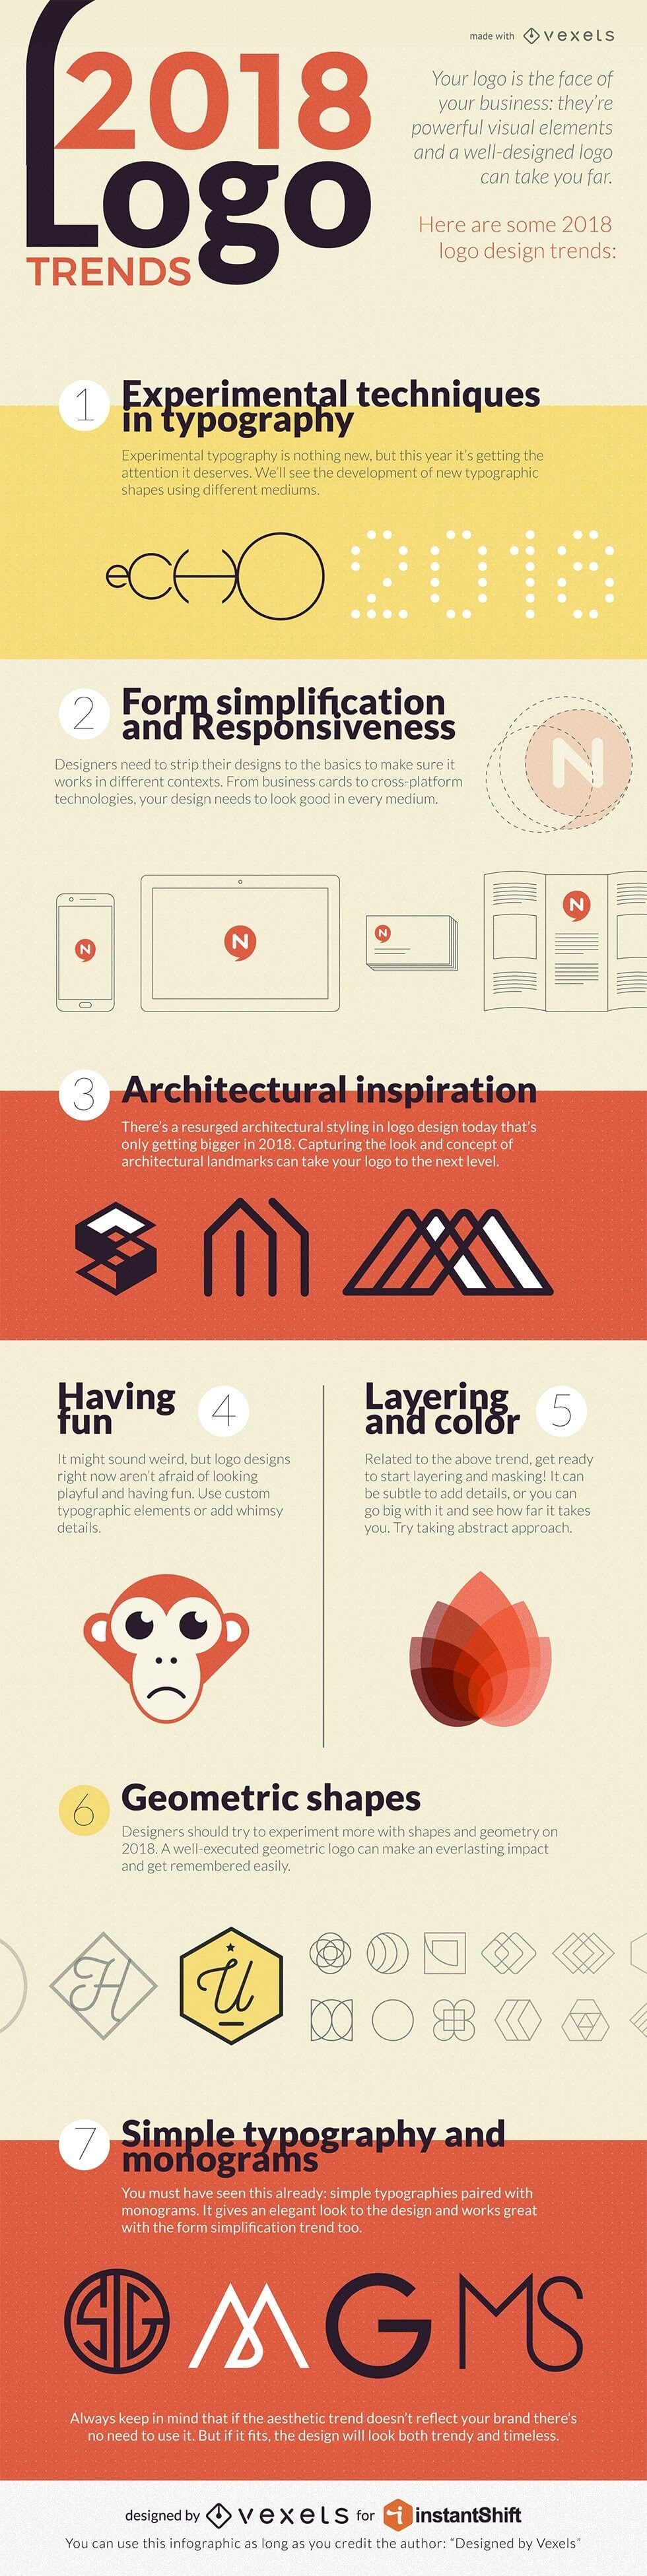 Infographic: 2018 logo trends